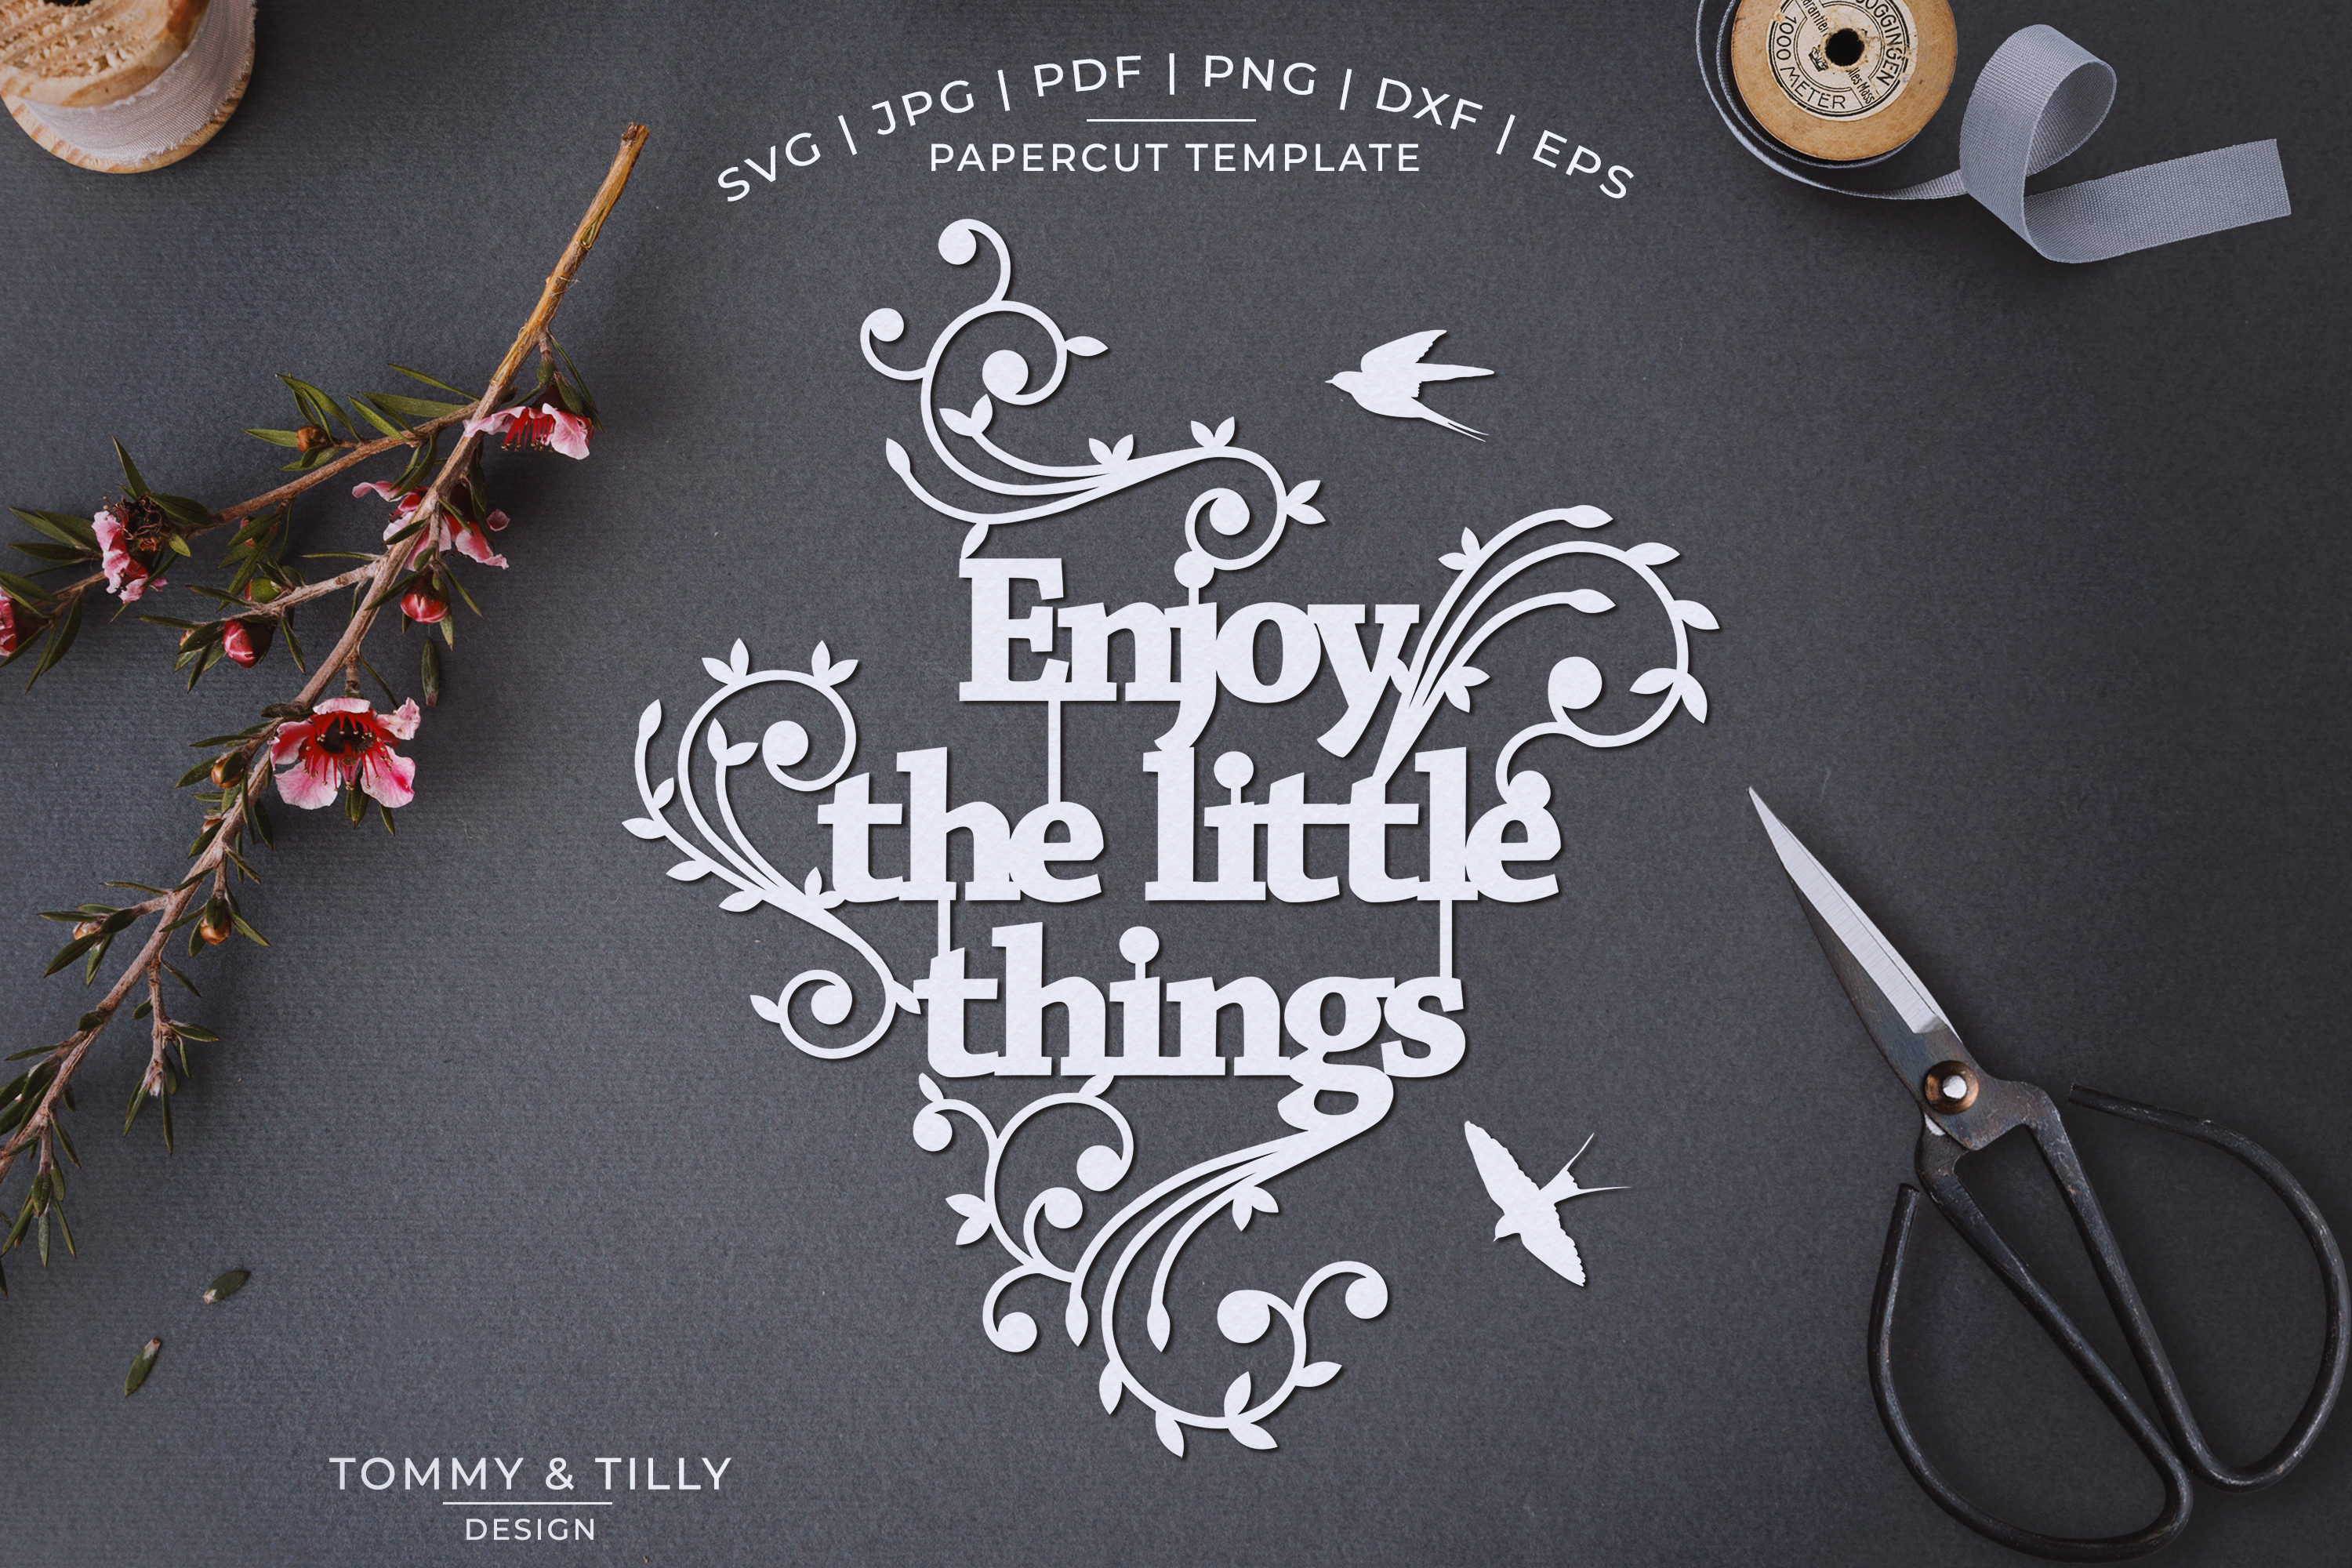 Enjoy the little things - Papercut SVG EPS DXF PNG PDF example image 1